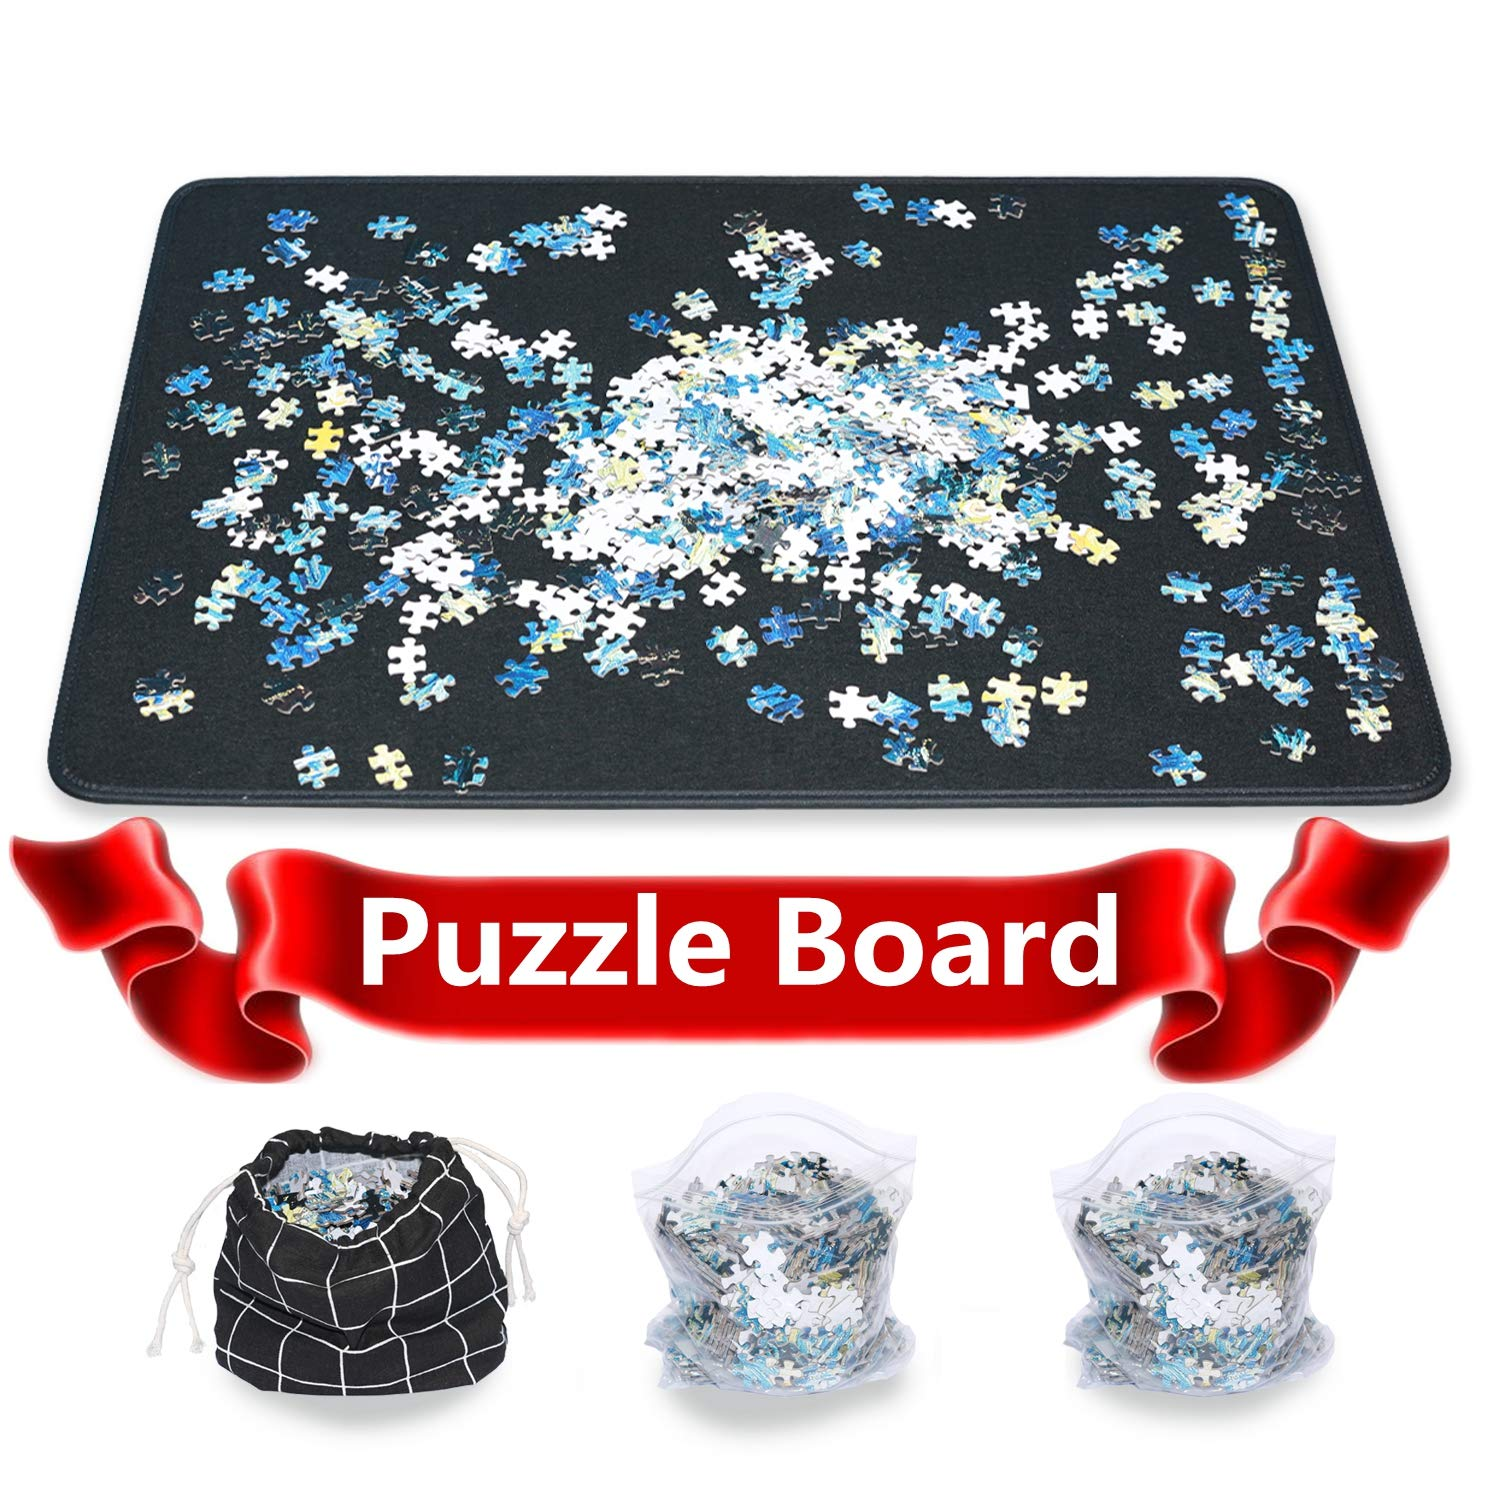 Jigsaw Puzzle Mat Puzzle Board Smooth Puzzle Plateau Portable Board Easy Move Storage Work Separate Jigsaw Mat Board up to 1000 Pieces by Ditome by Ditome